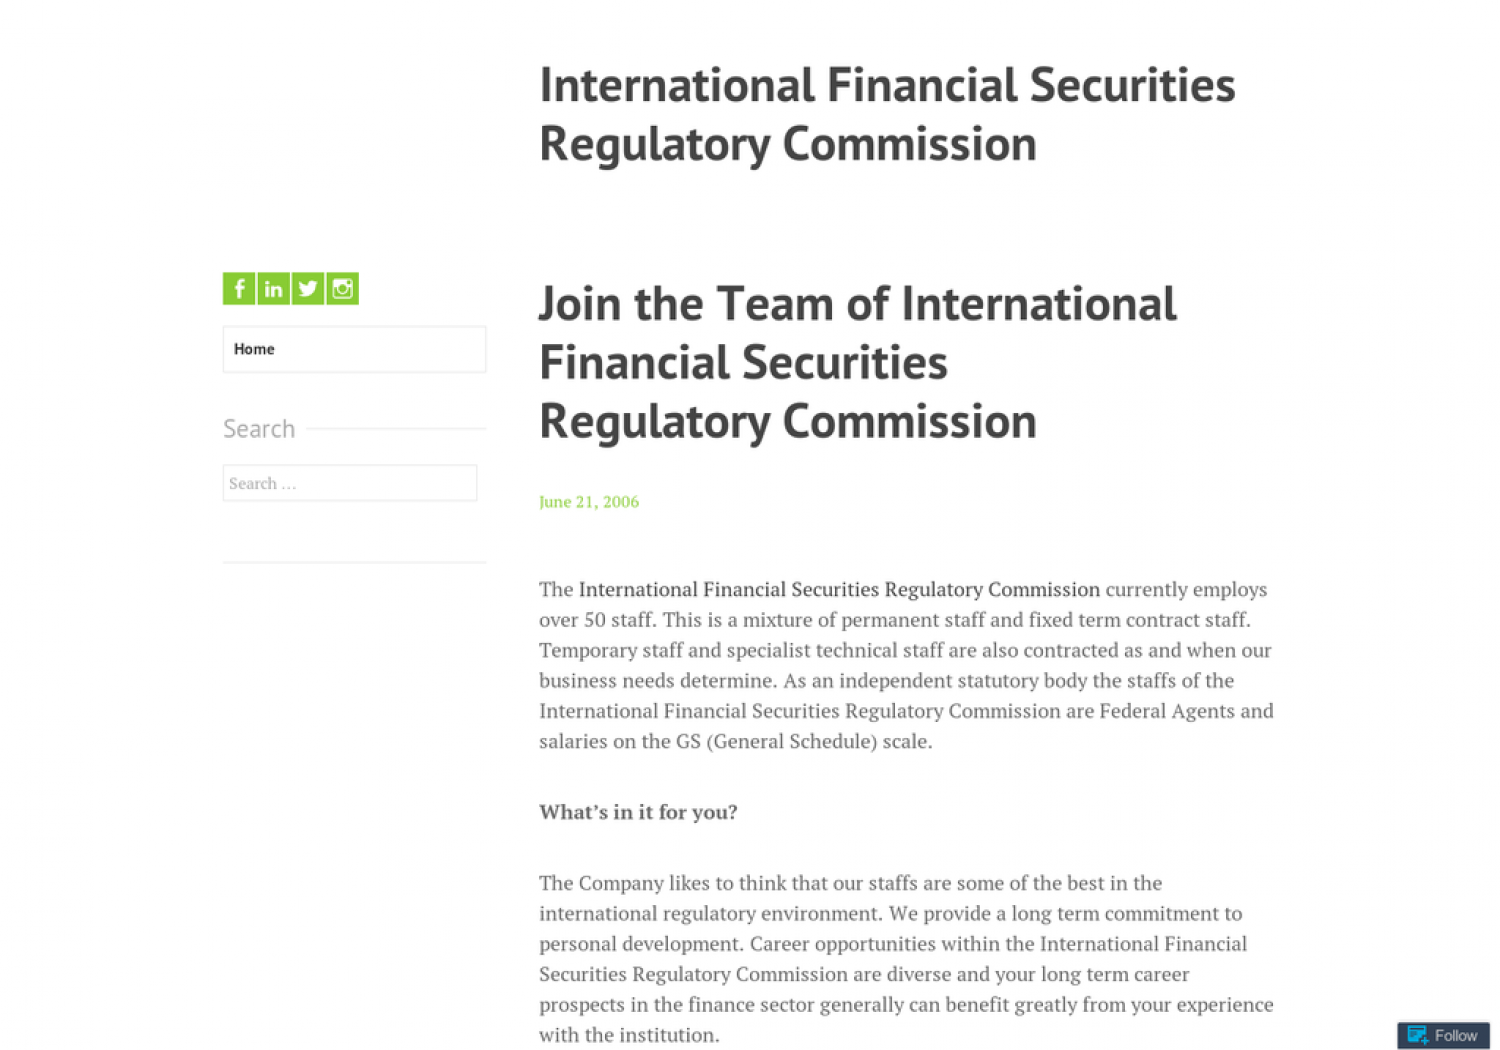 Join the Team of International Financial Securities Regulatory Commission Infographic